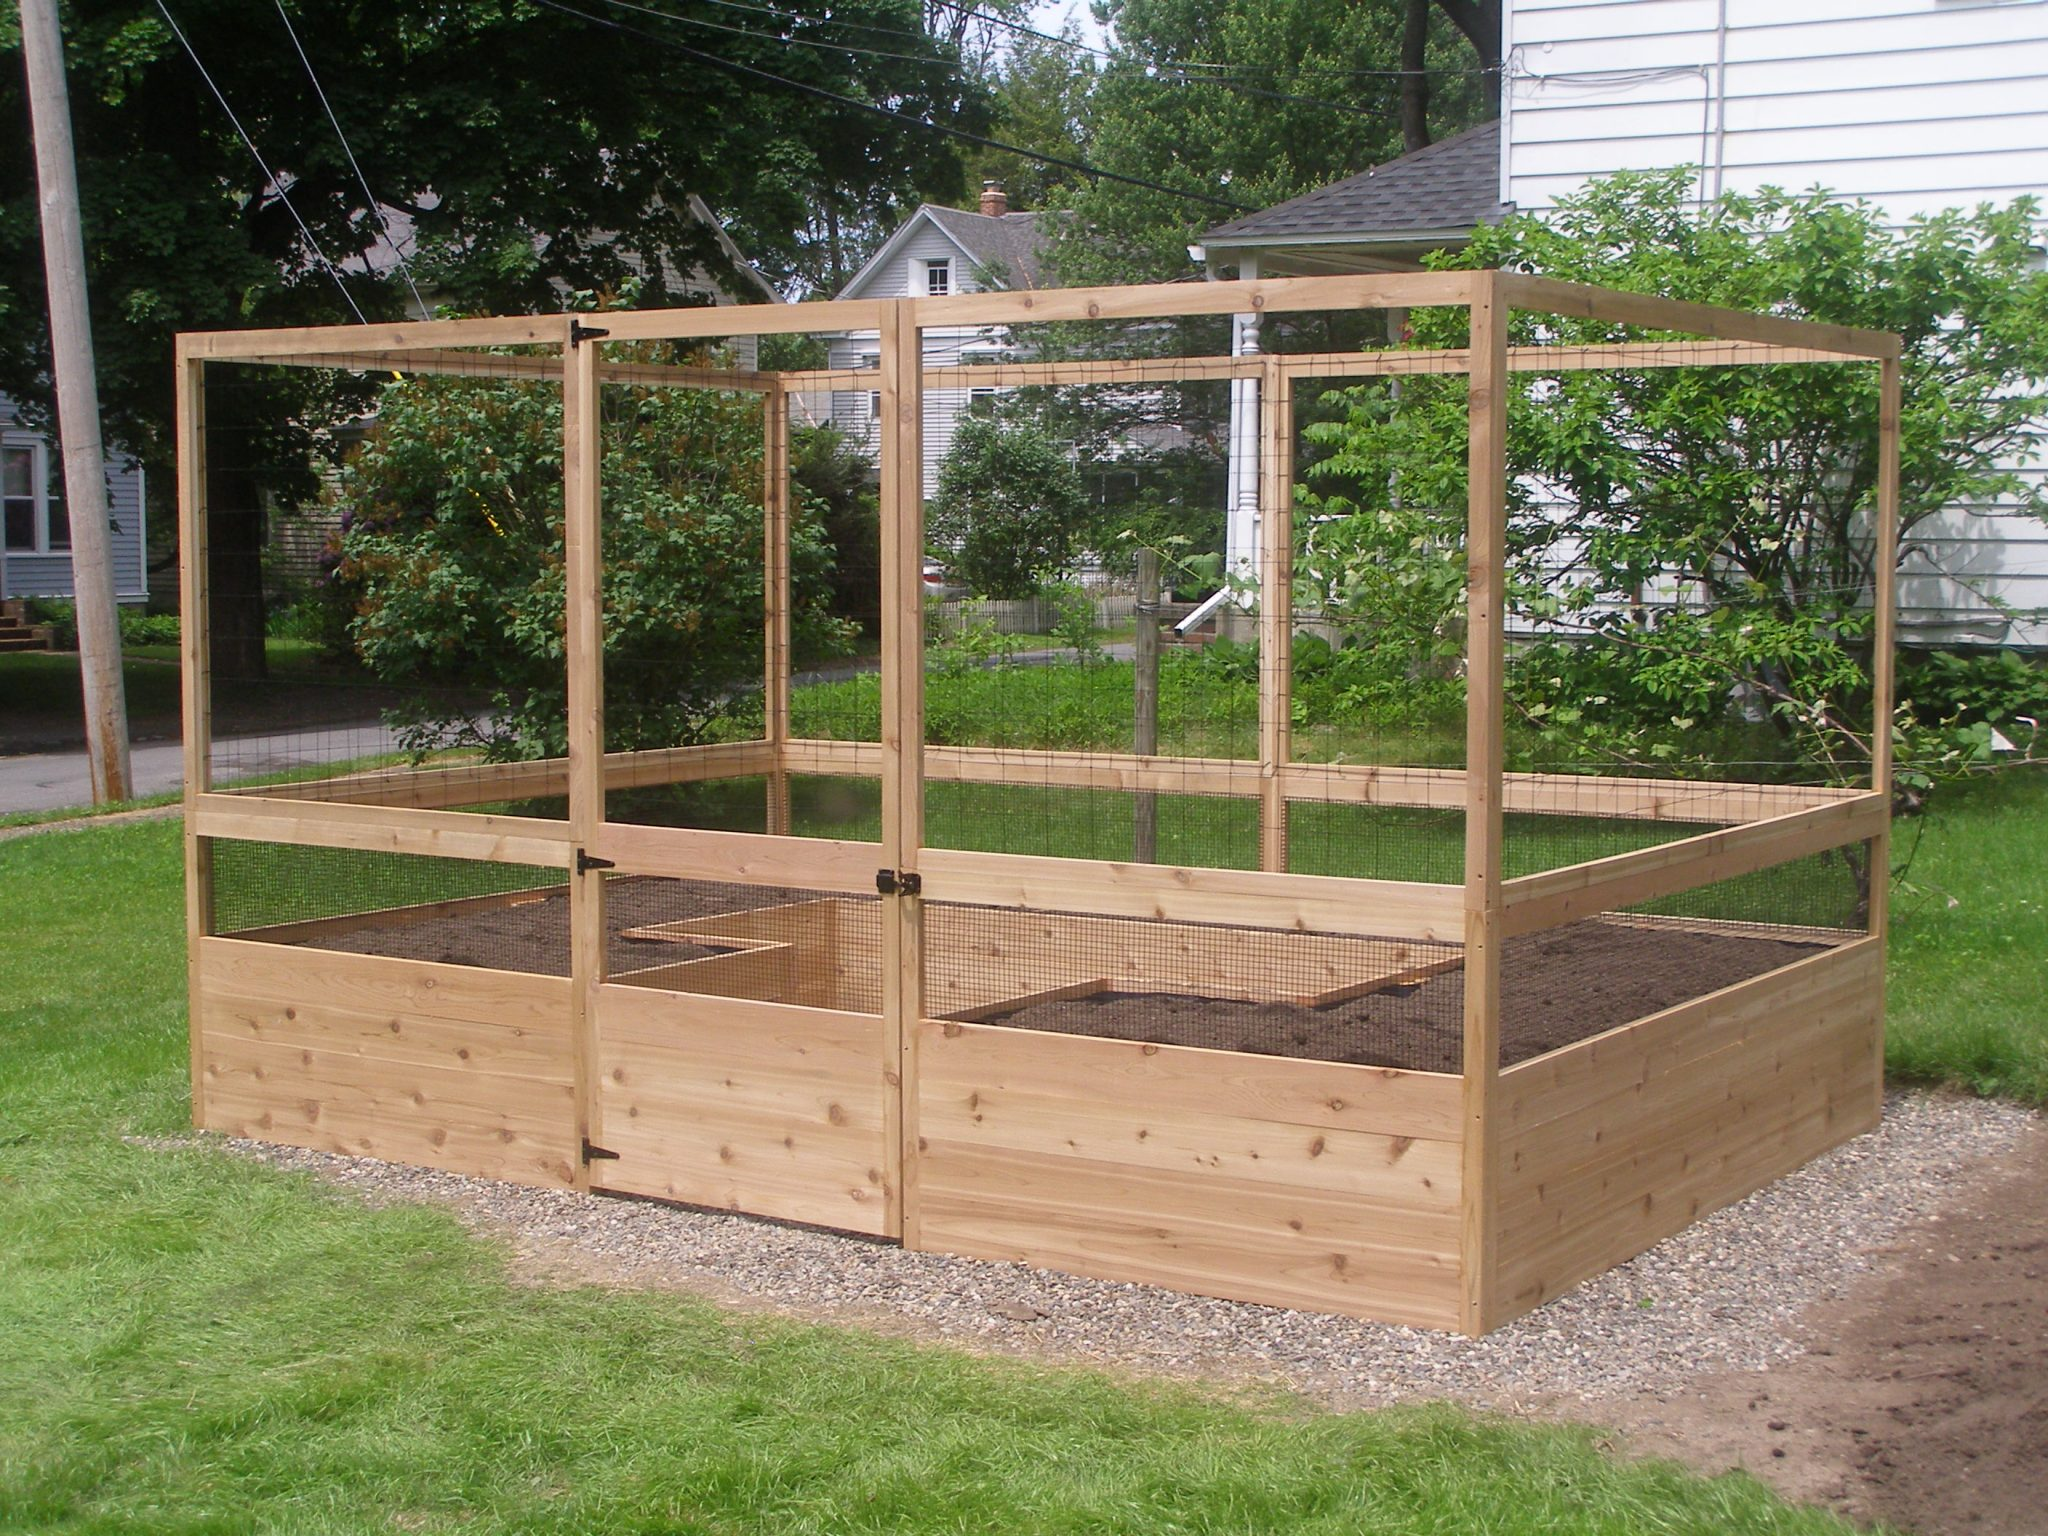 Deer Proof Vegetable Garden Kit By